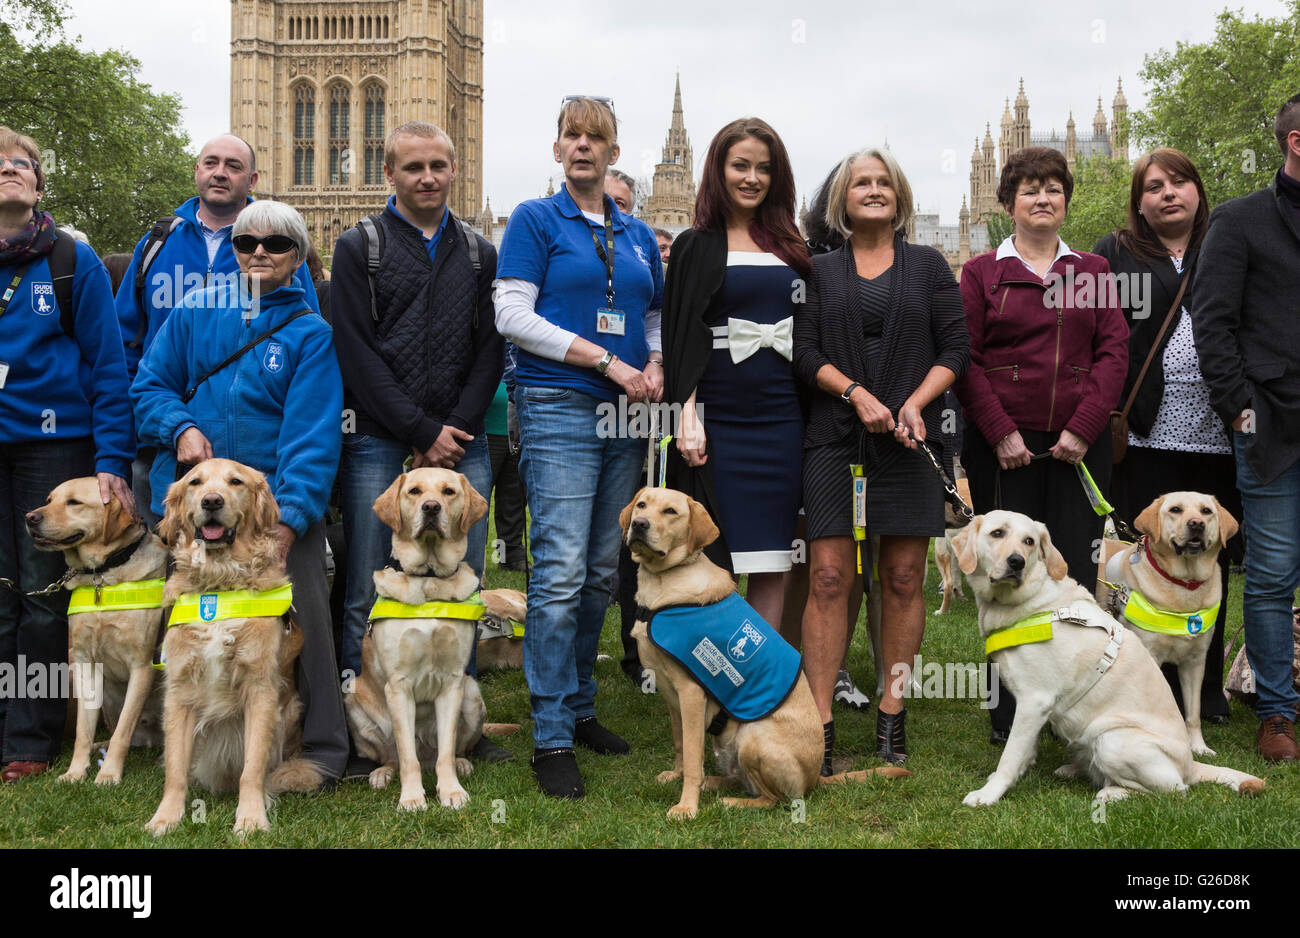 london uk 25 may 2016 100 guide dog owners with their guide dogs rh alamy com guide dog owner refuses guide dog owners forum